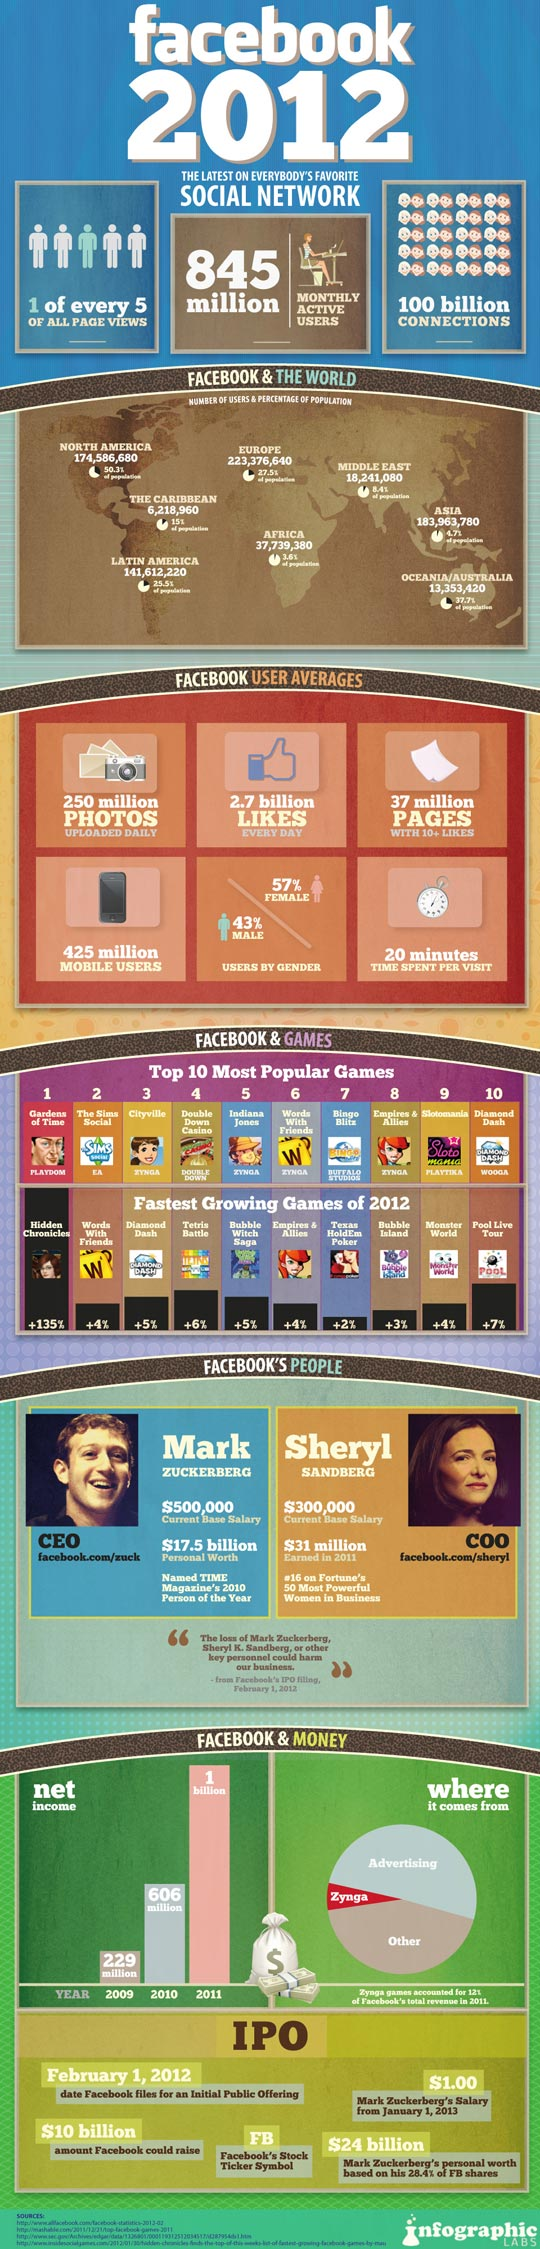 Facebook Facts_Infographic